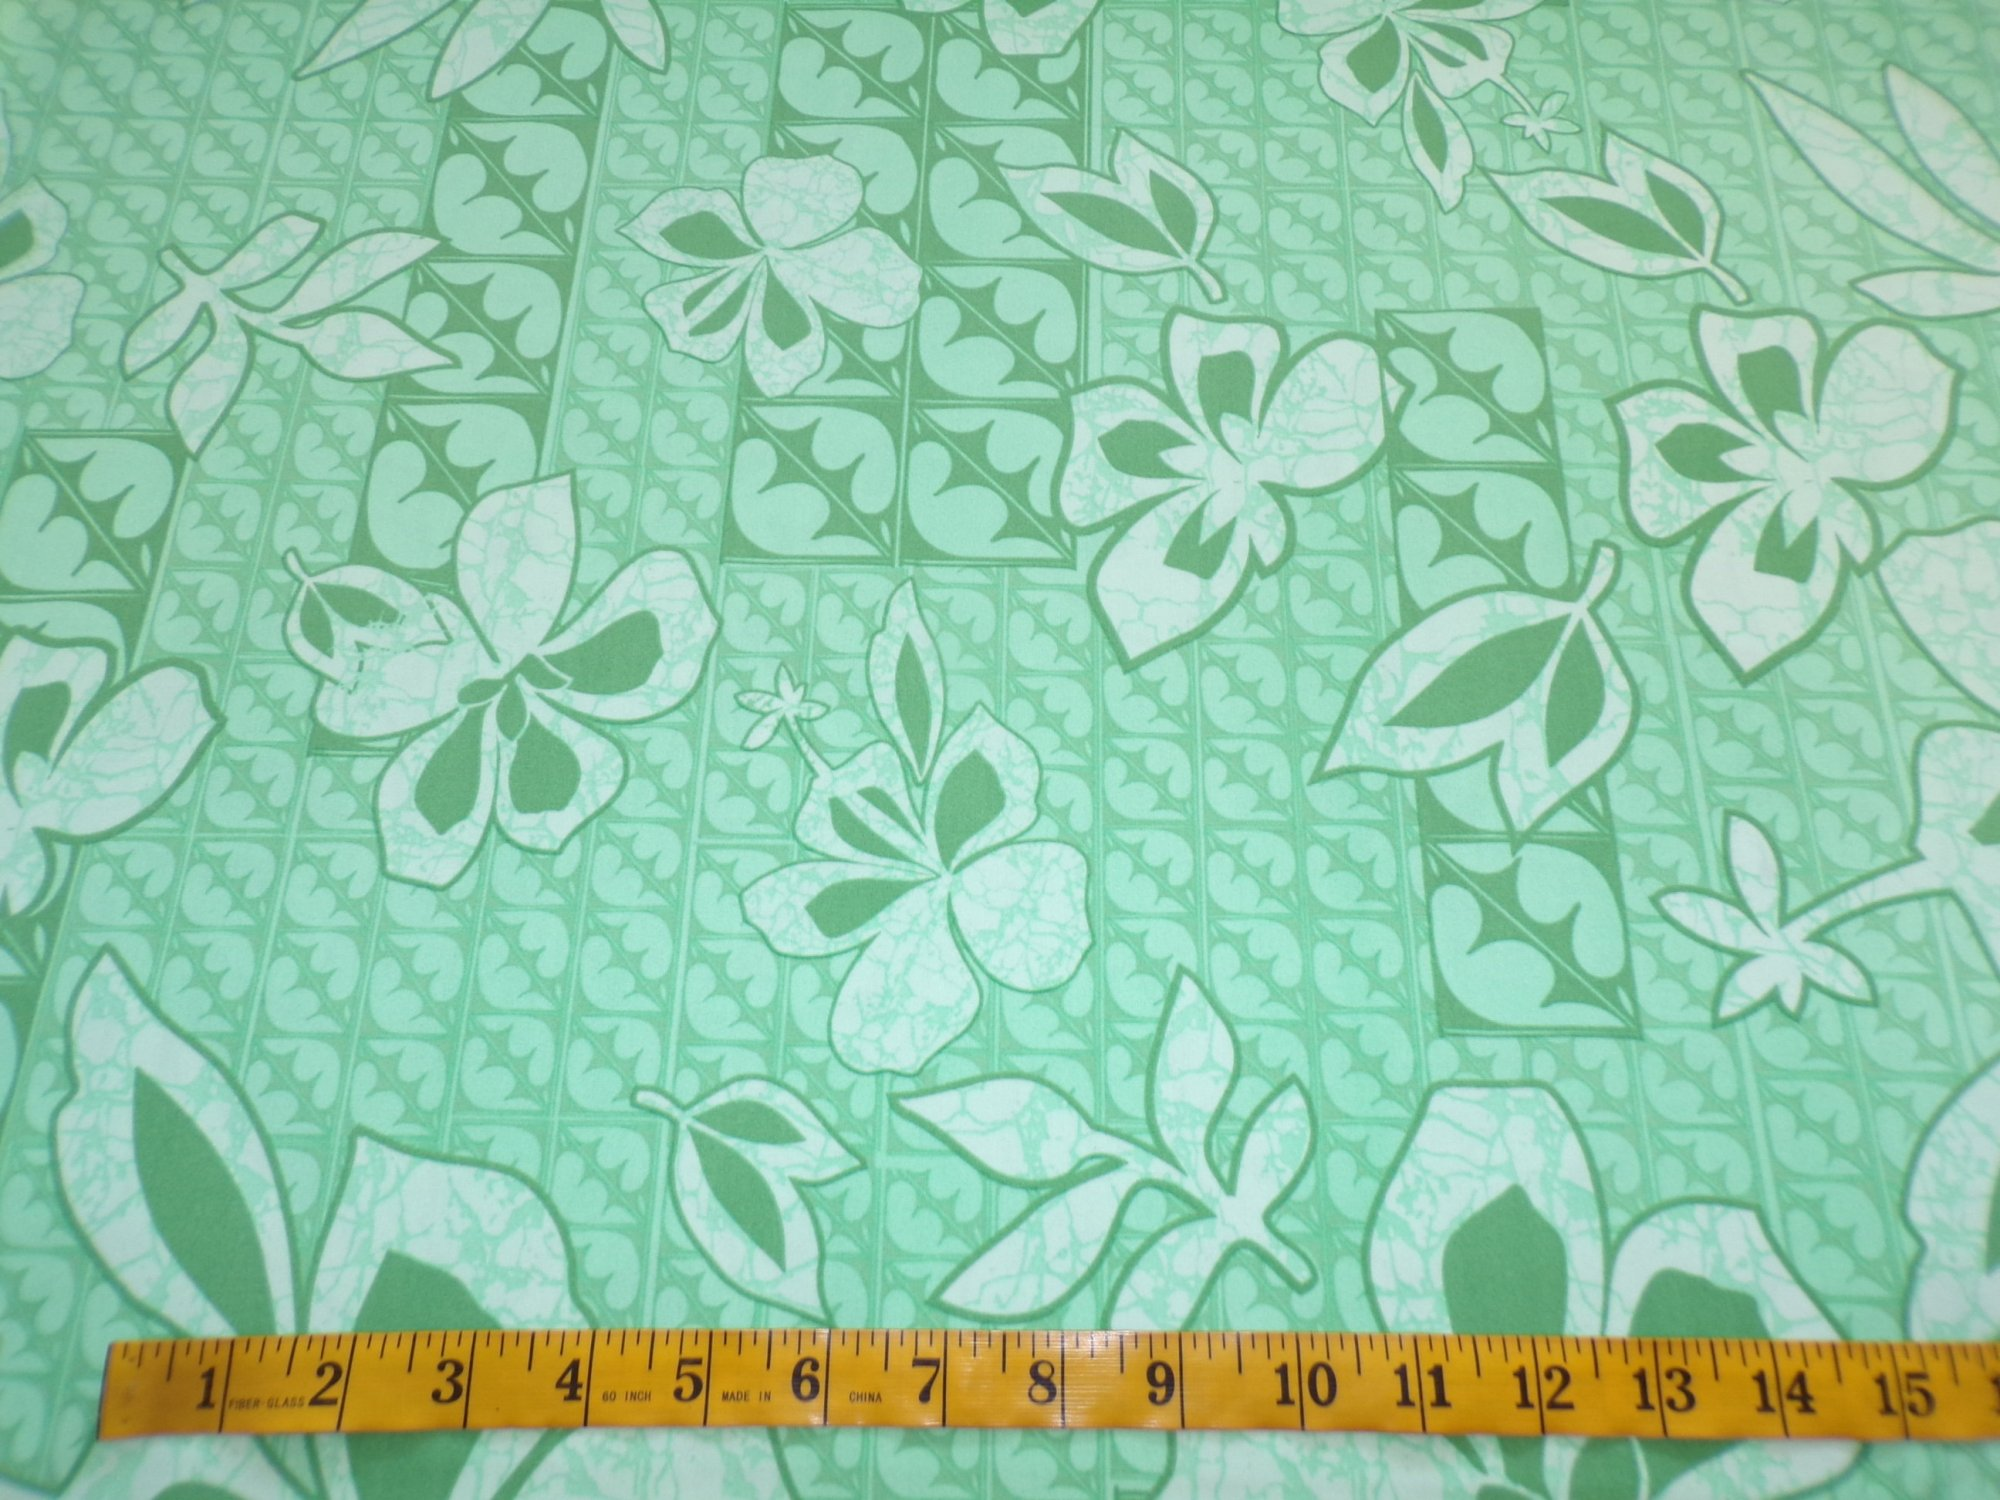 Swimwear - Green Grid with Floral